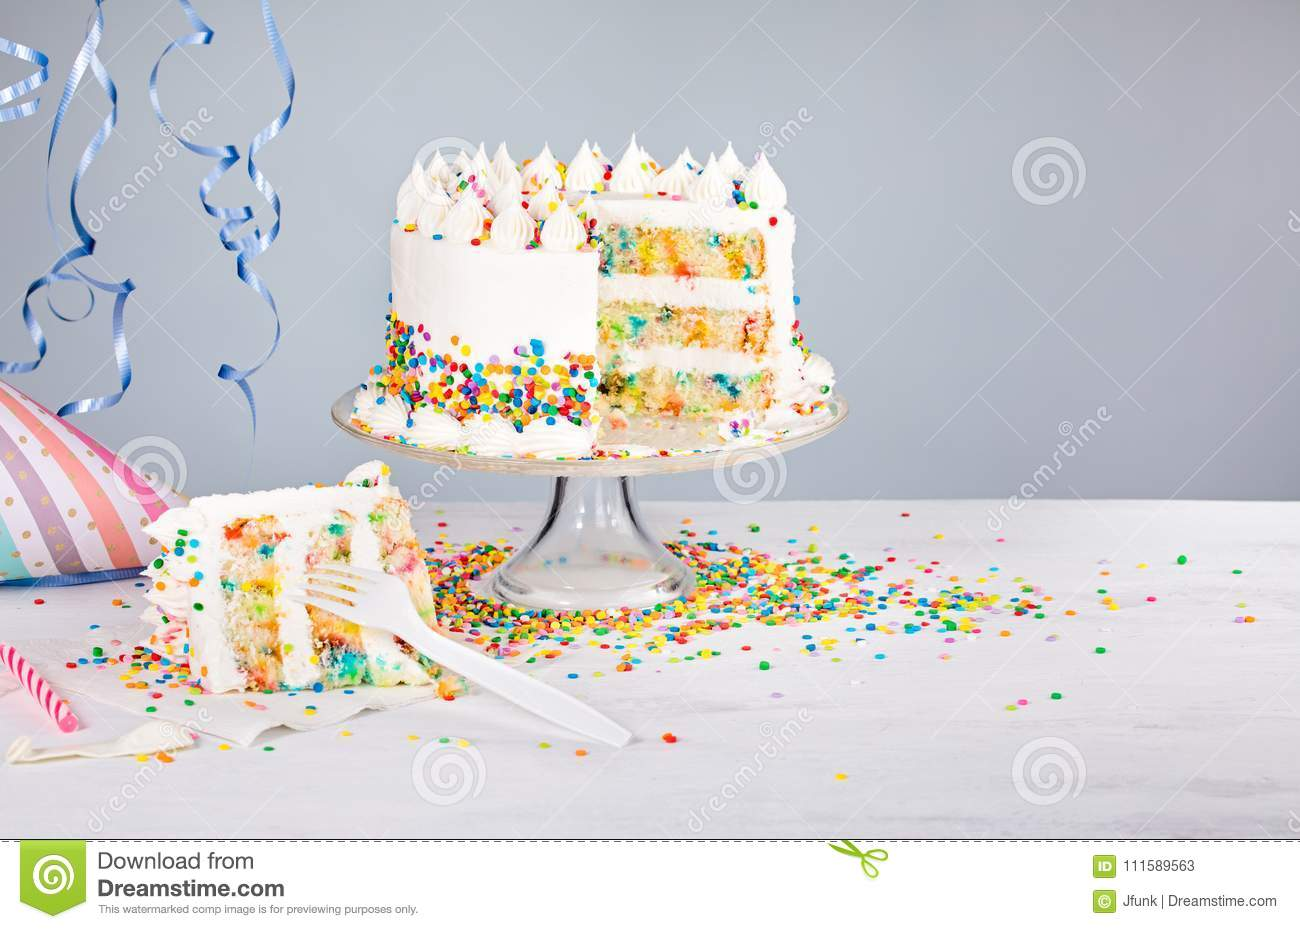 Birthday Party Cake With Sprinkles Stock Image - Image of fork ...